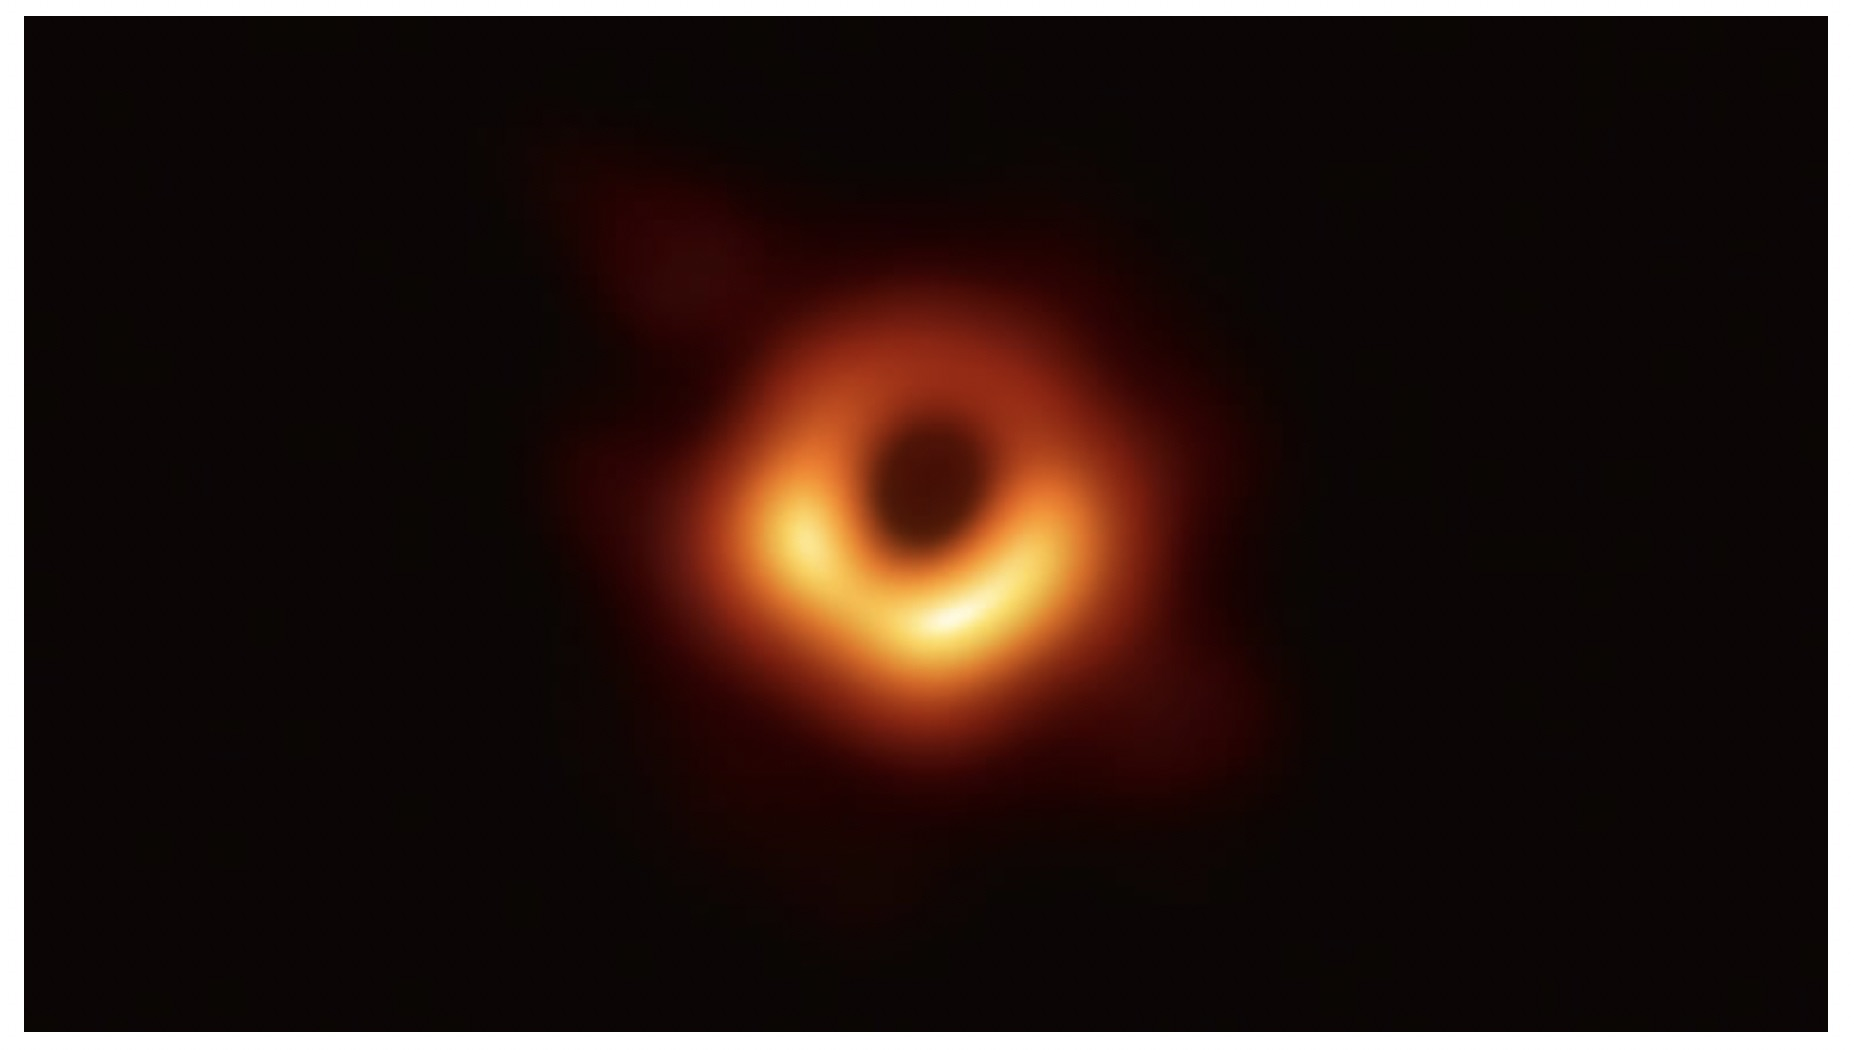 < The first image ever taken of the event horizon of a supermassive black hole, captured by the Event Horizon Telescope in 2017. (Event Horizon Telescope) >